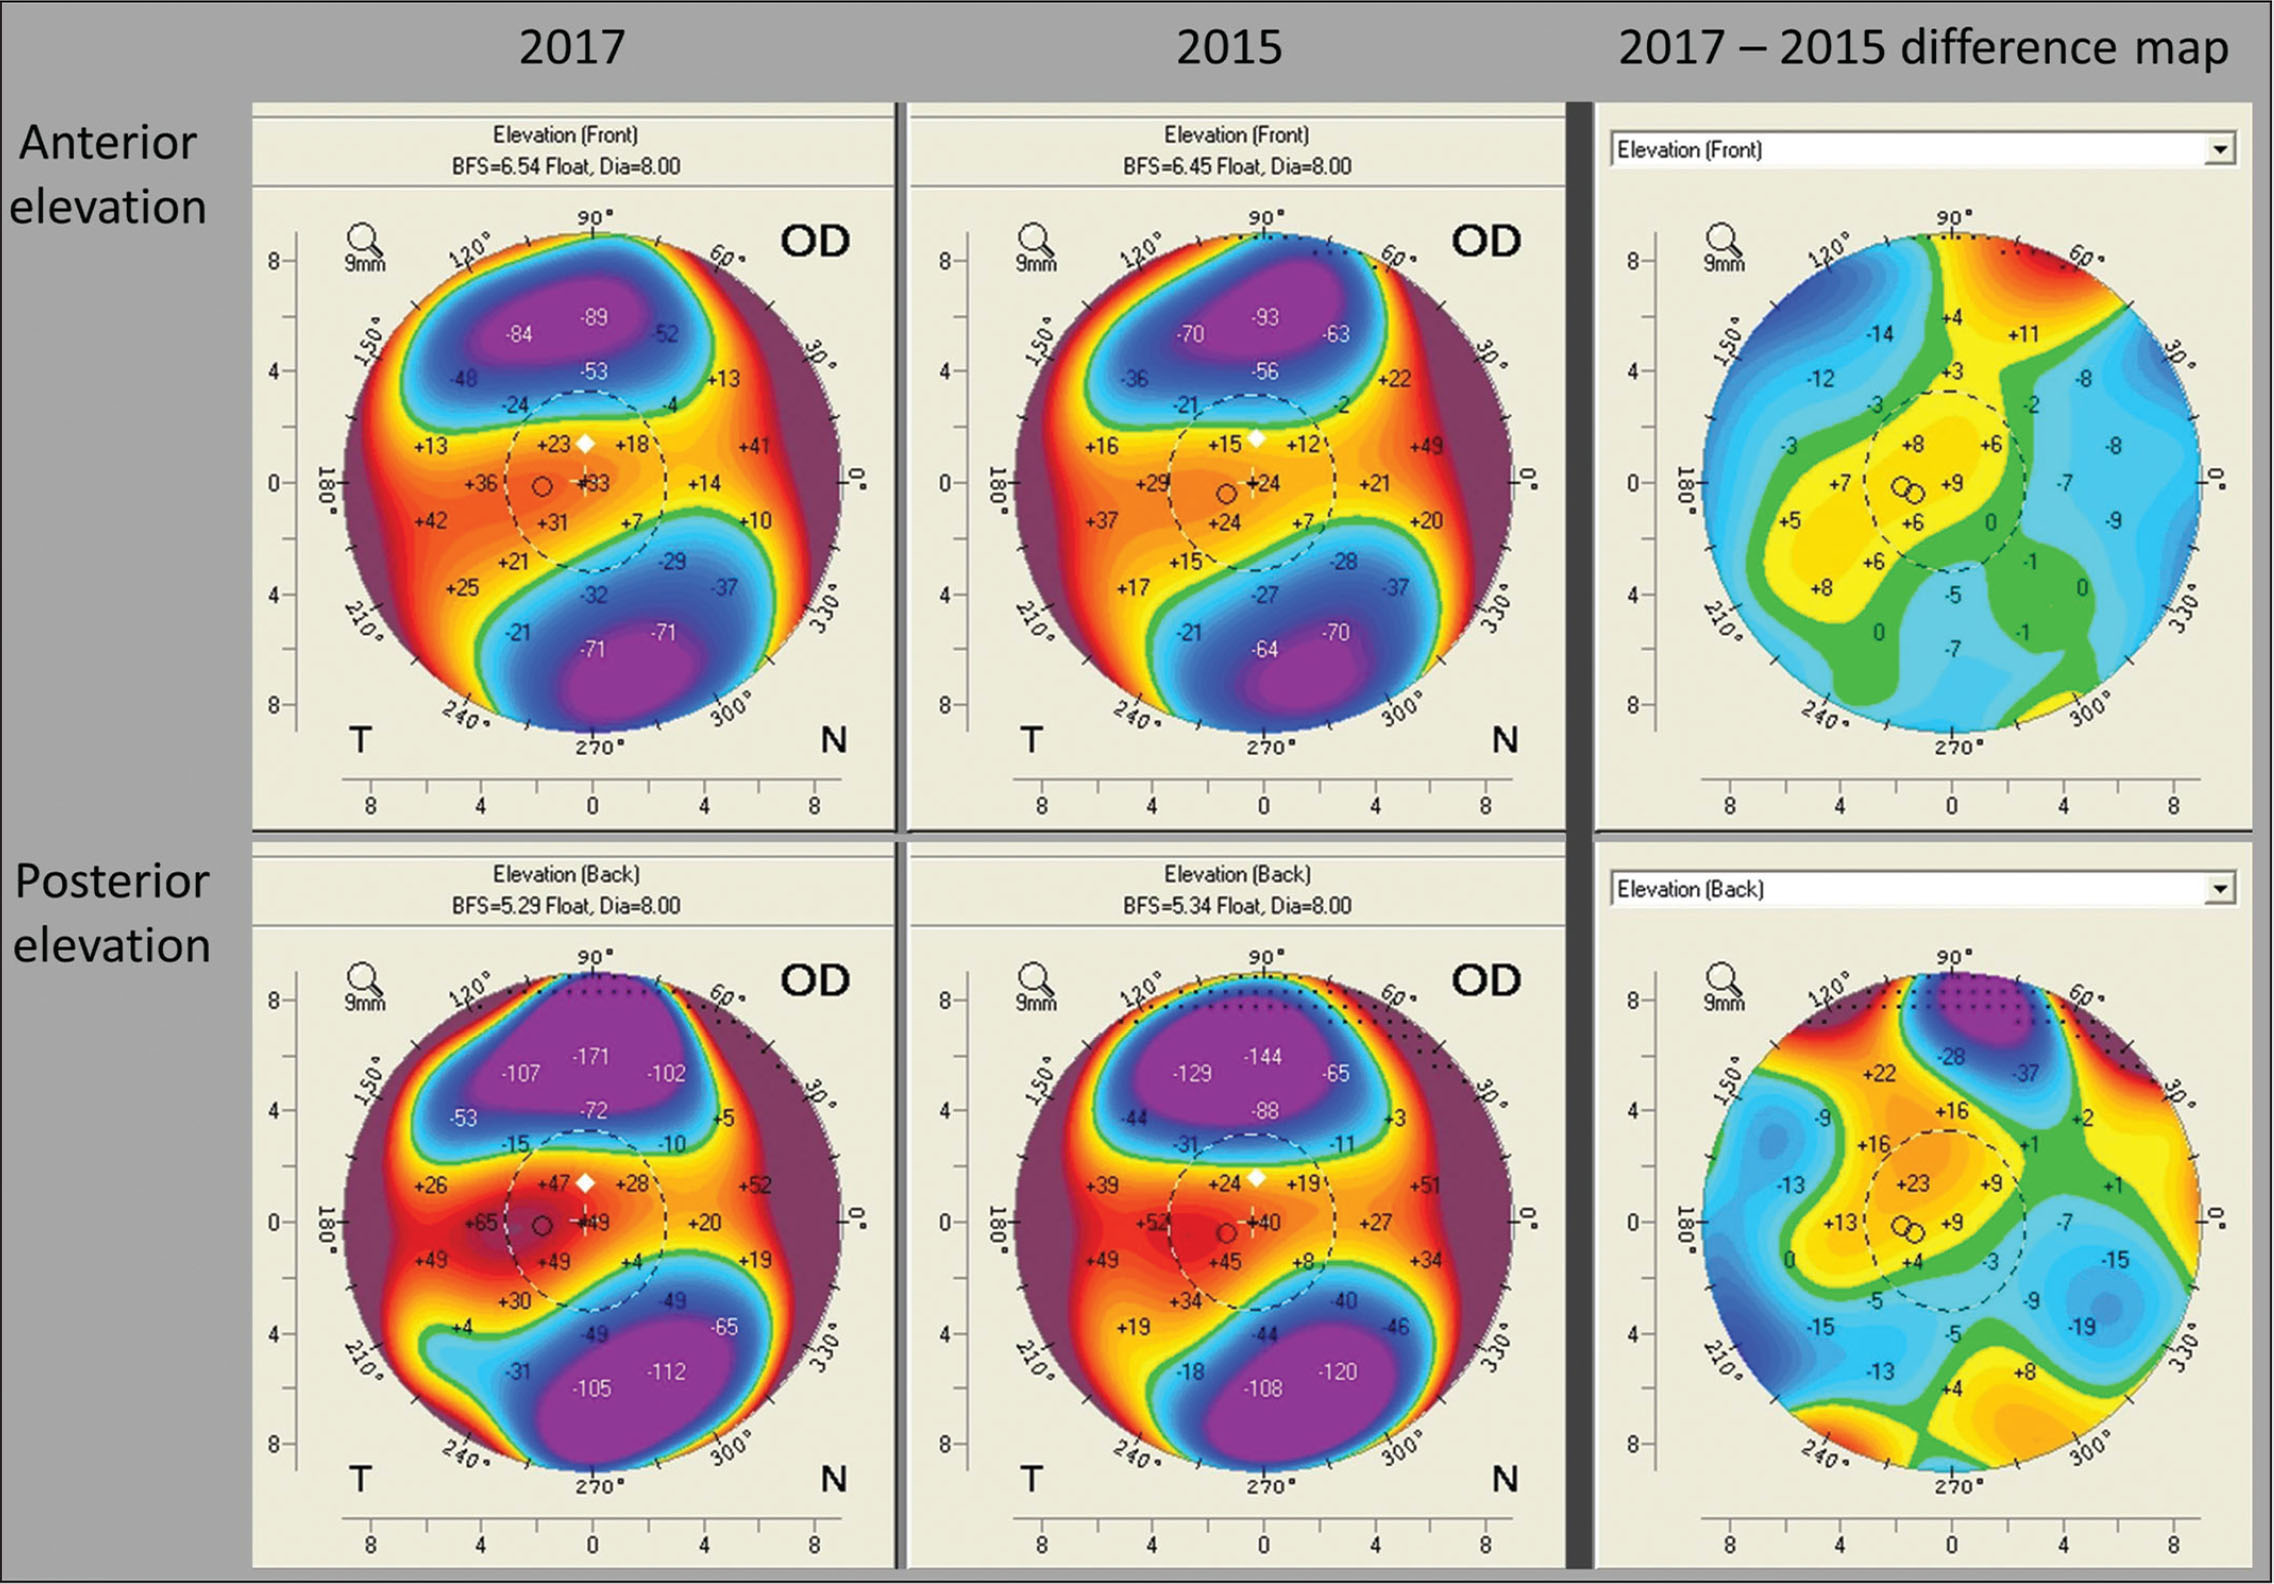 Pentacam corneal tomography (Oculus Optikgeräte, Wetzlar, Germany) from the 2017 visit, 2015 visit, and associated difference maps for anterior corneal evaluation (top row) and posterior corneal elevation (bottom row). There is progression noted on both surfaces.